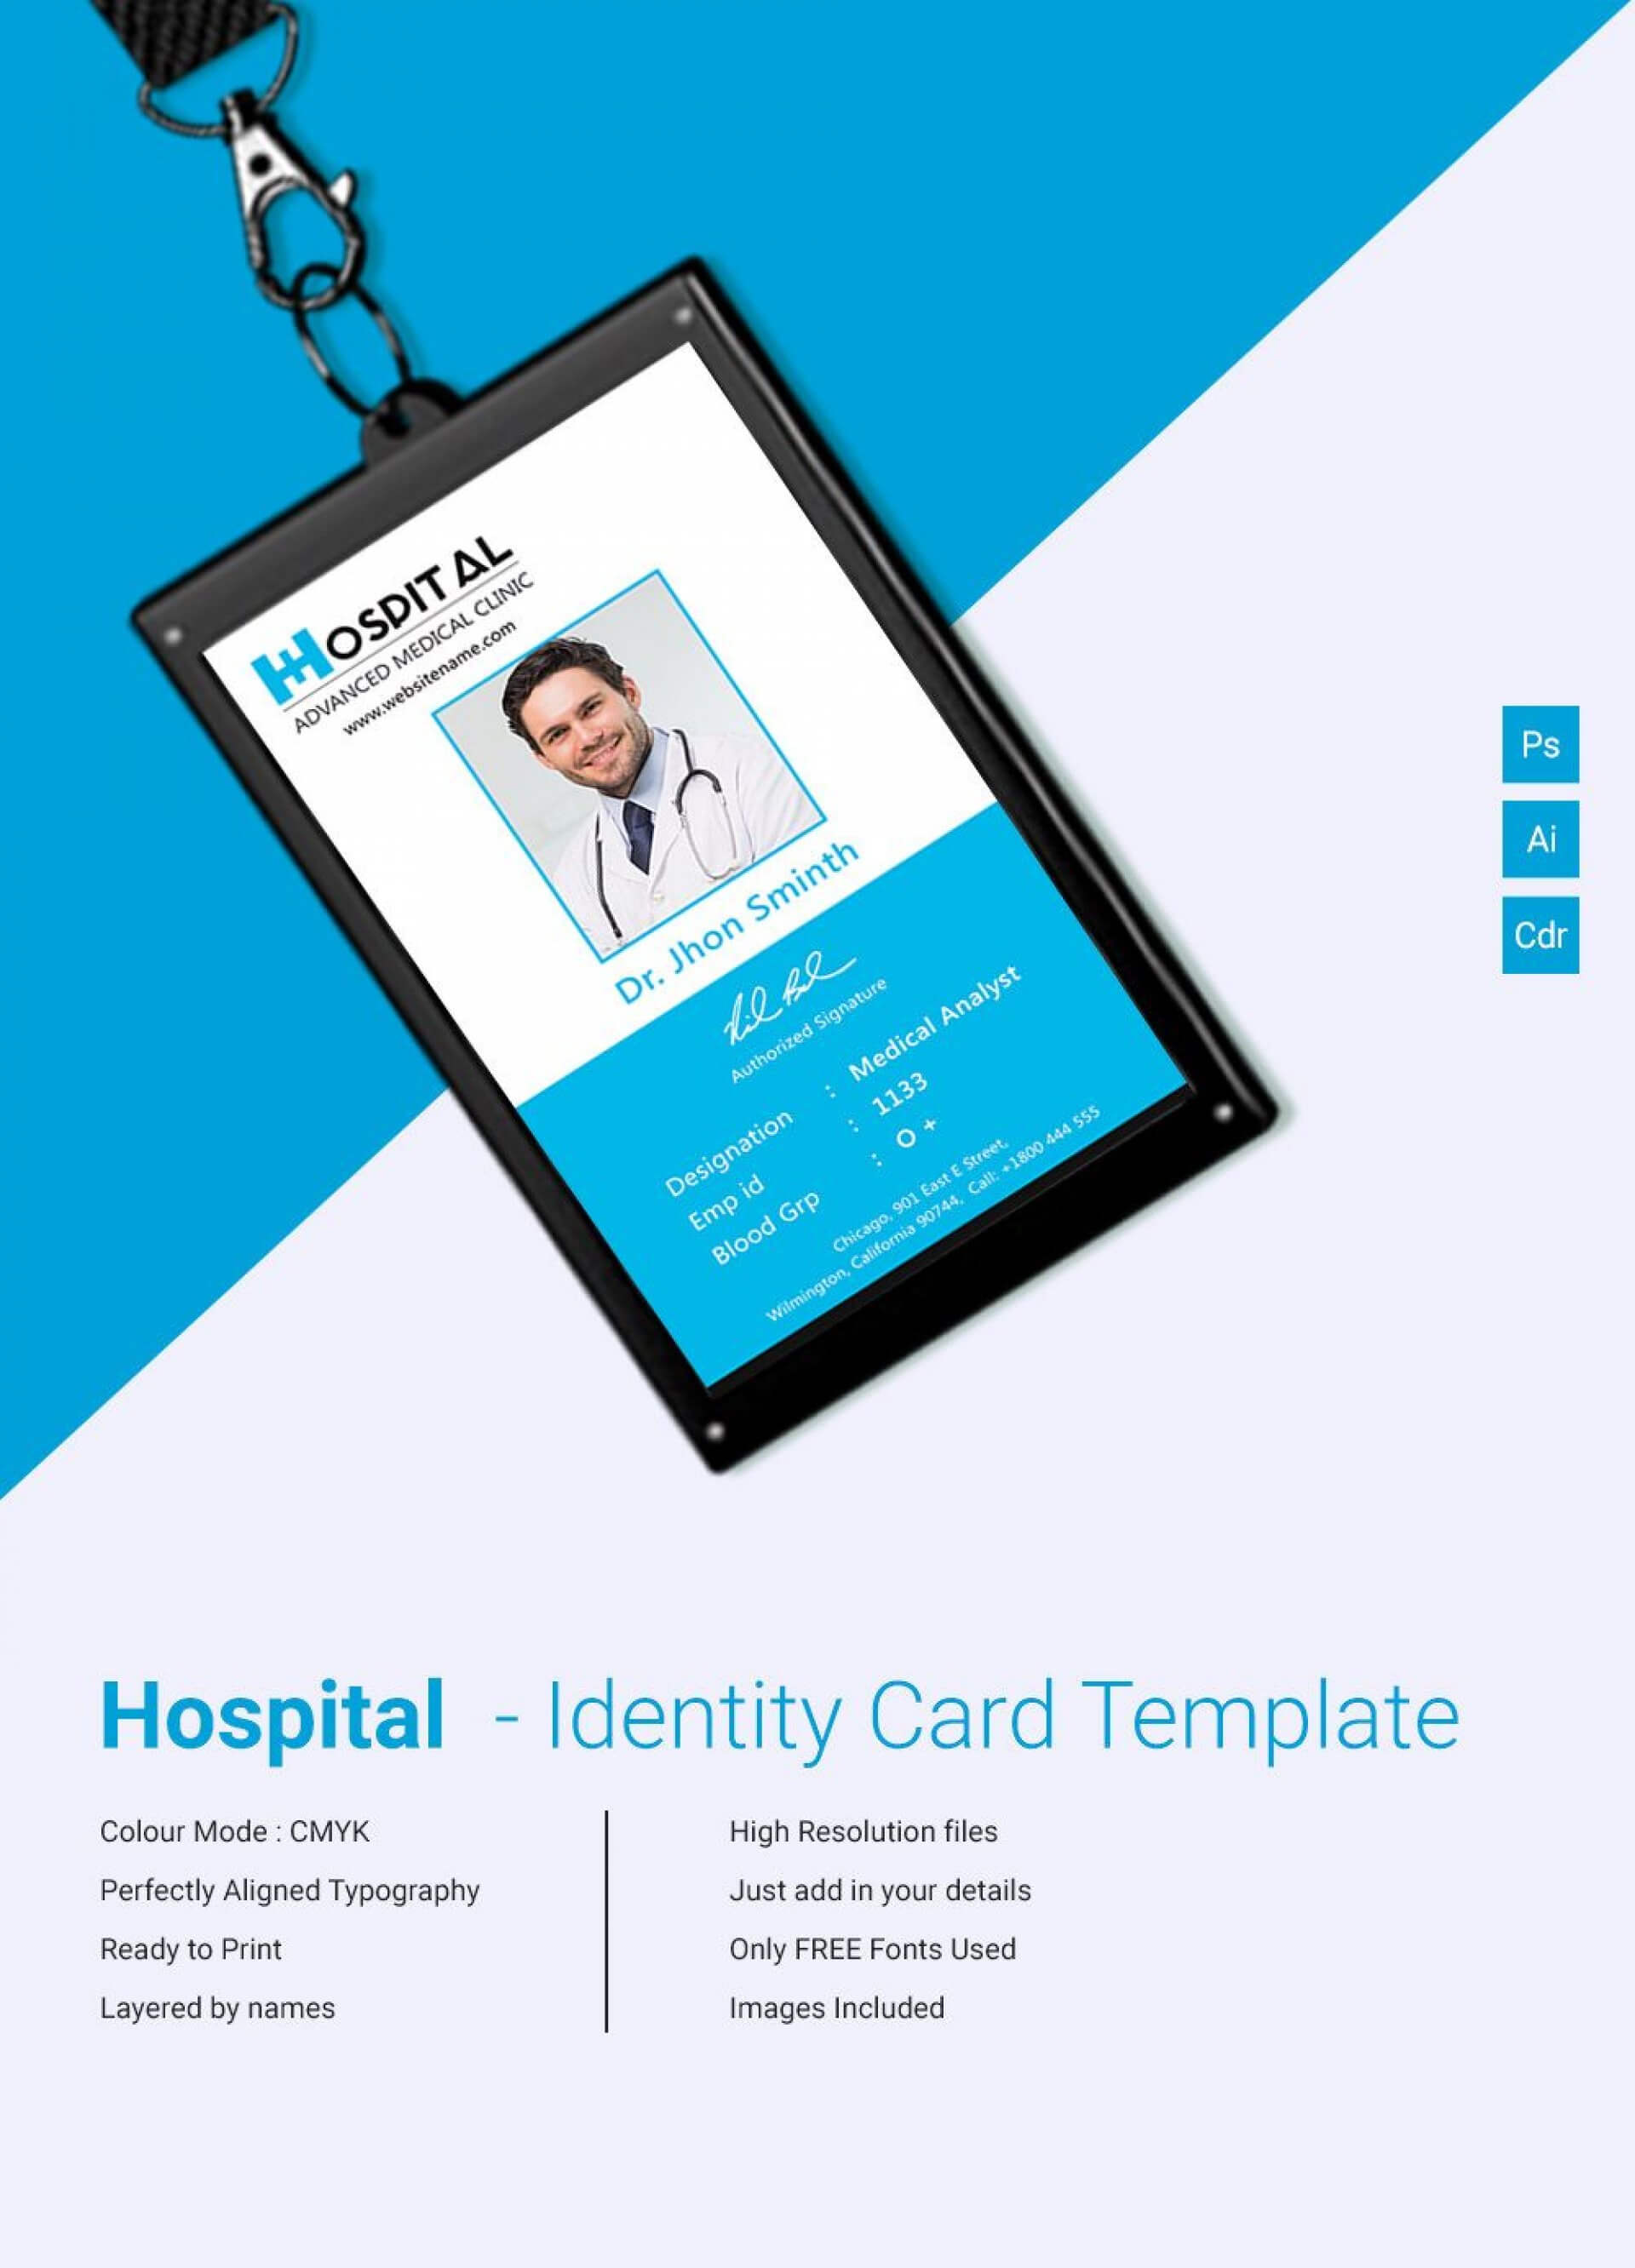 015 Undergraduate Vertical Id Card Template Psd File Free Intended For Portrait Id Card Template